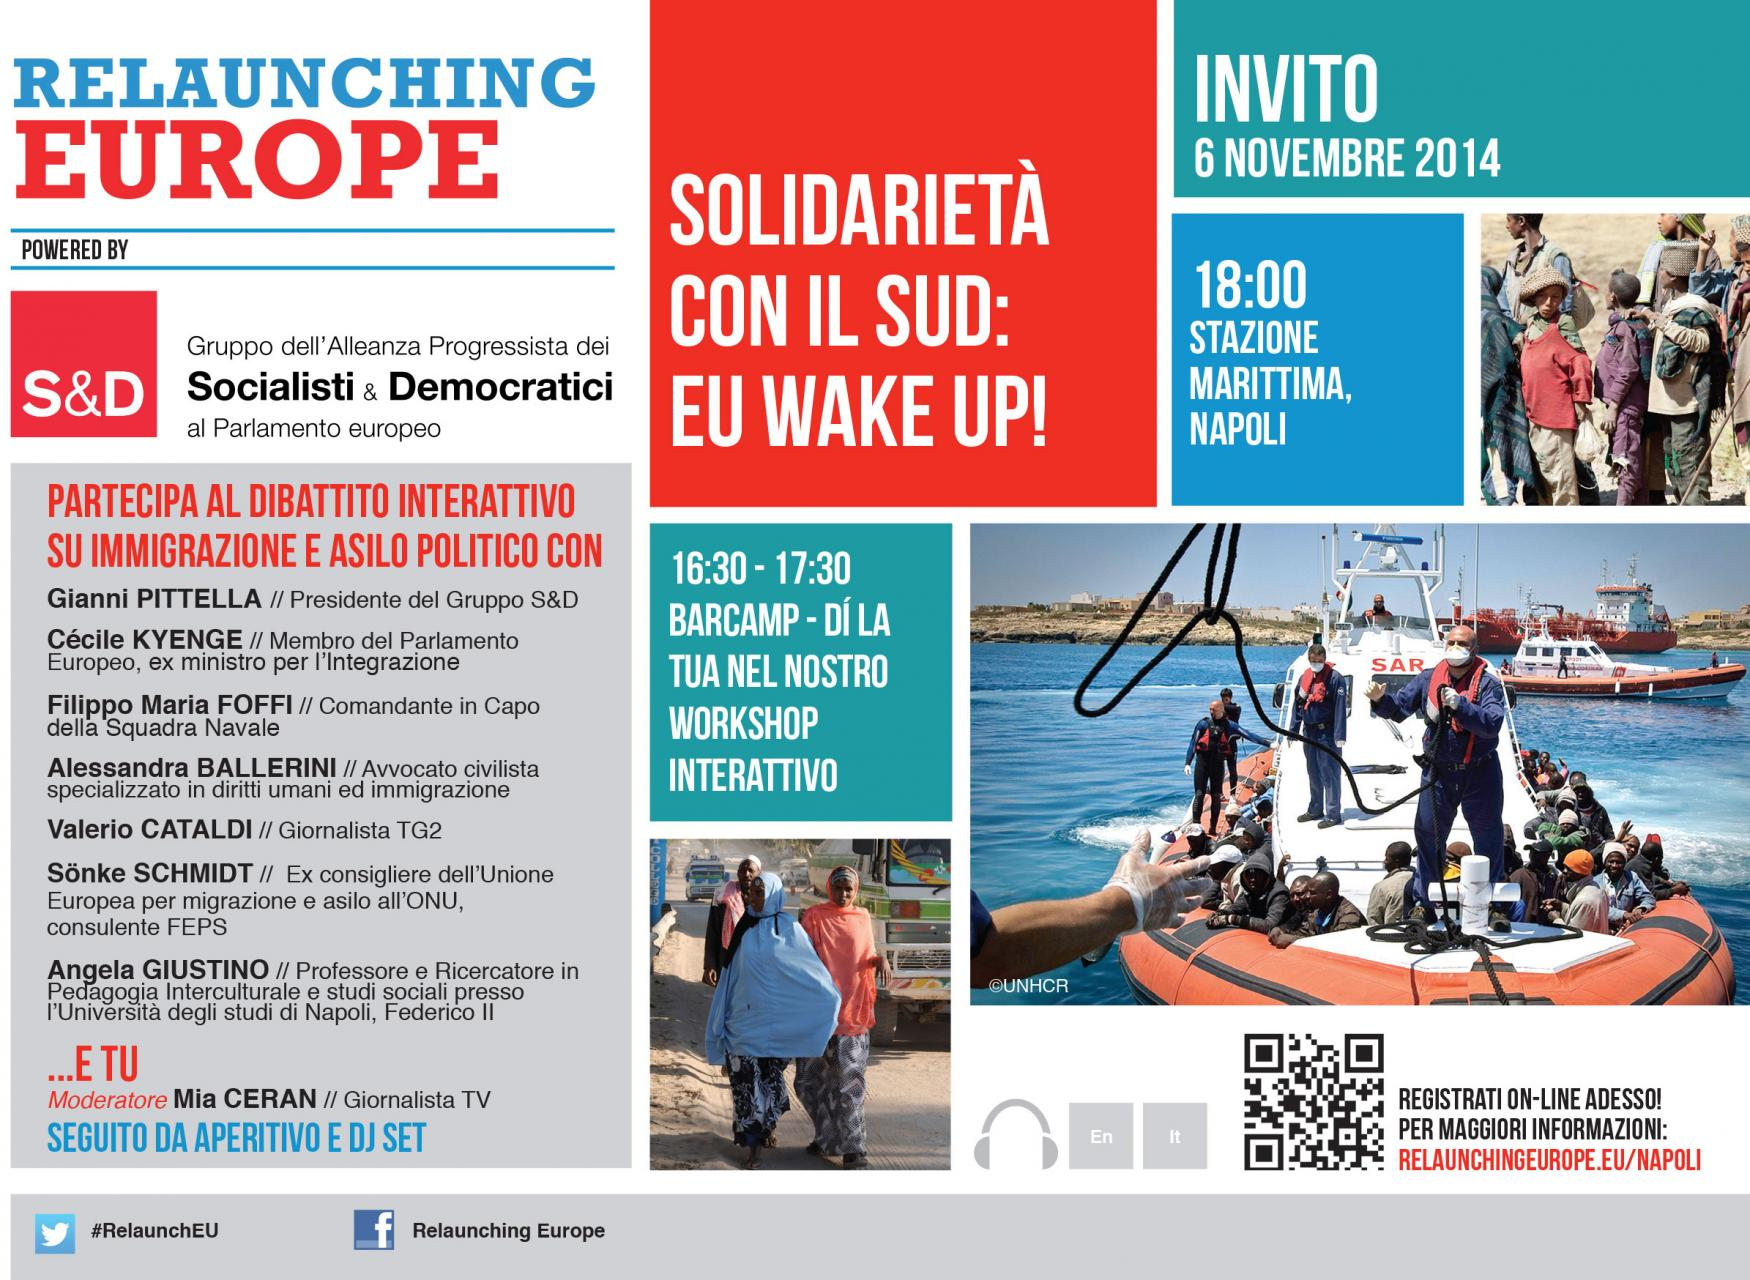 Relaunching Europe Naples 6/11/14